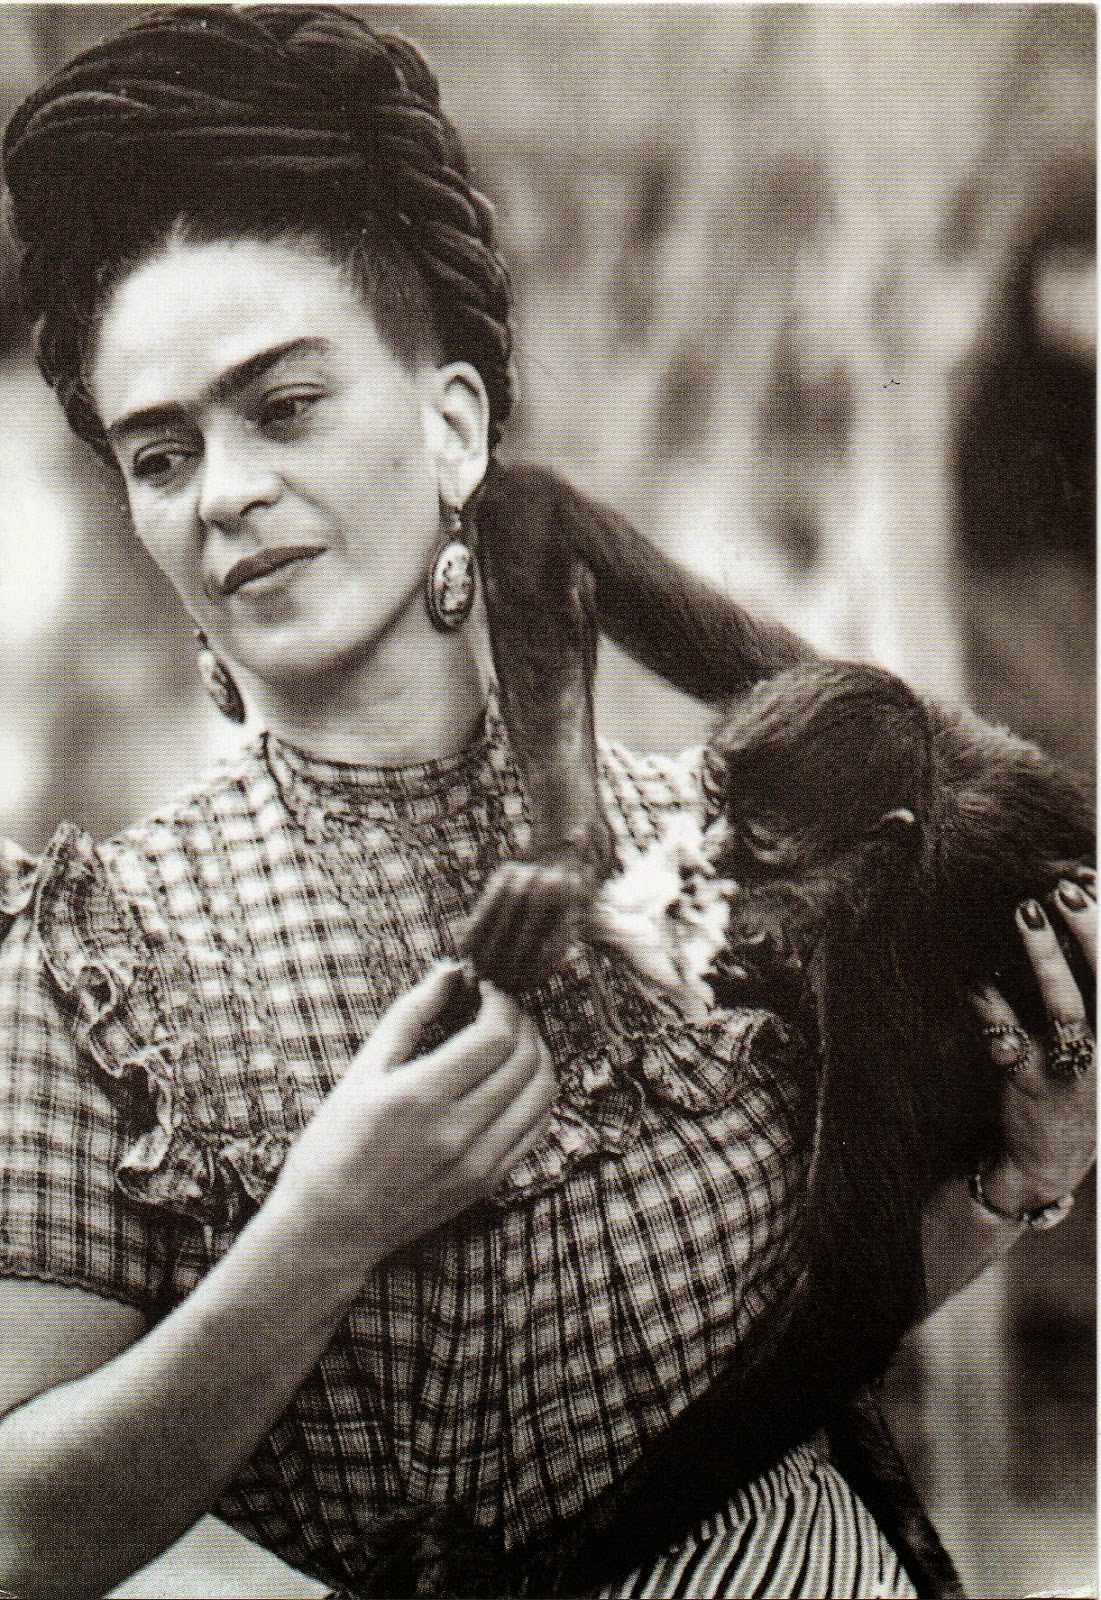 Frida Kahlo holding her pet monkey, Mexico City, 1944.